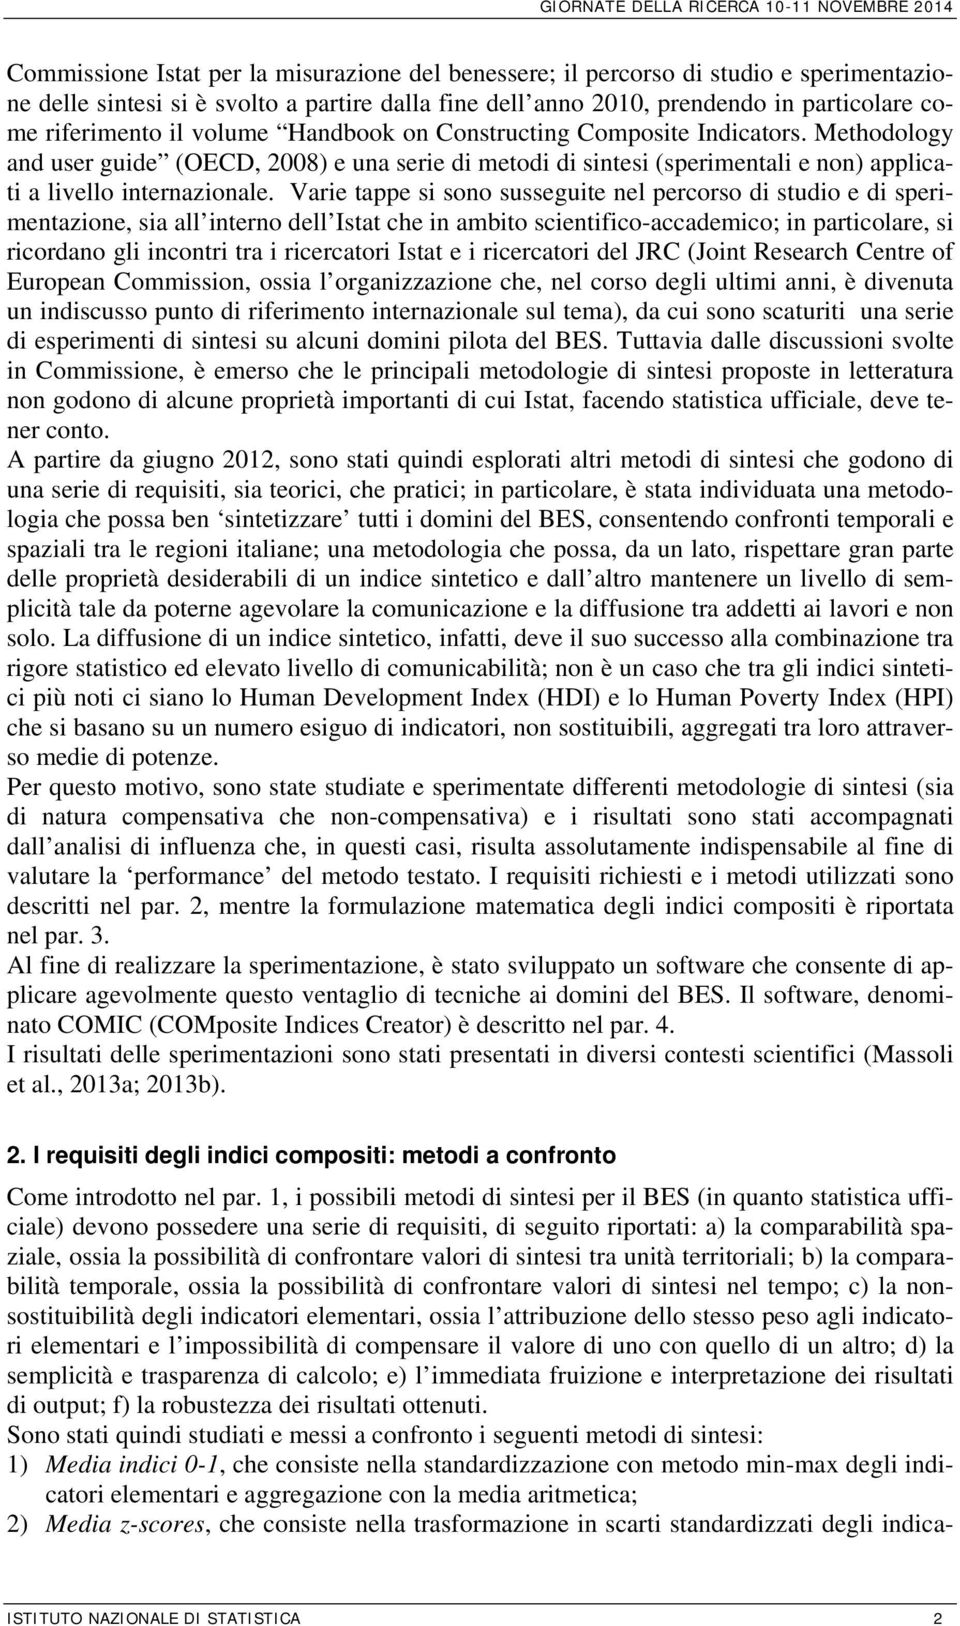 Methodology and user guide (OECD, 2008 e una serie di etodi di sintesi (sperientali e non applicati a livello internaionale.